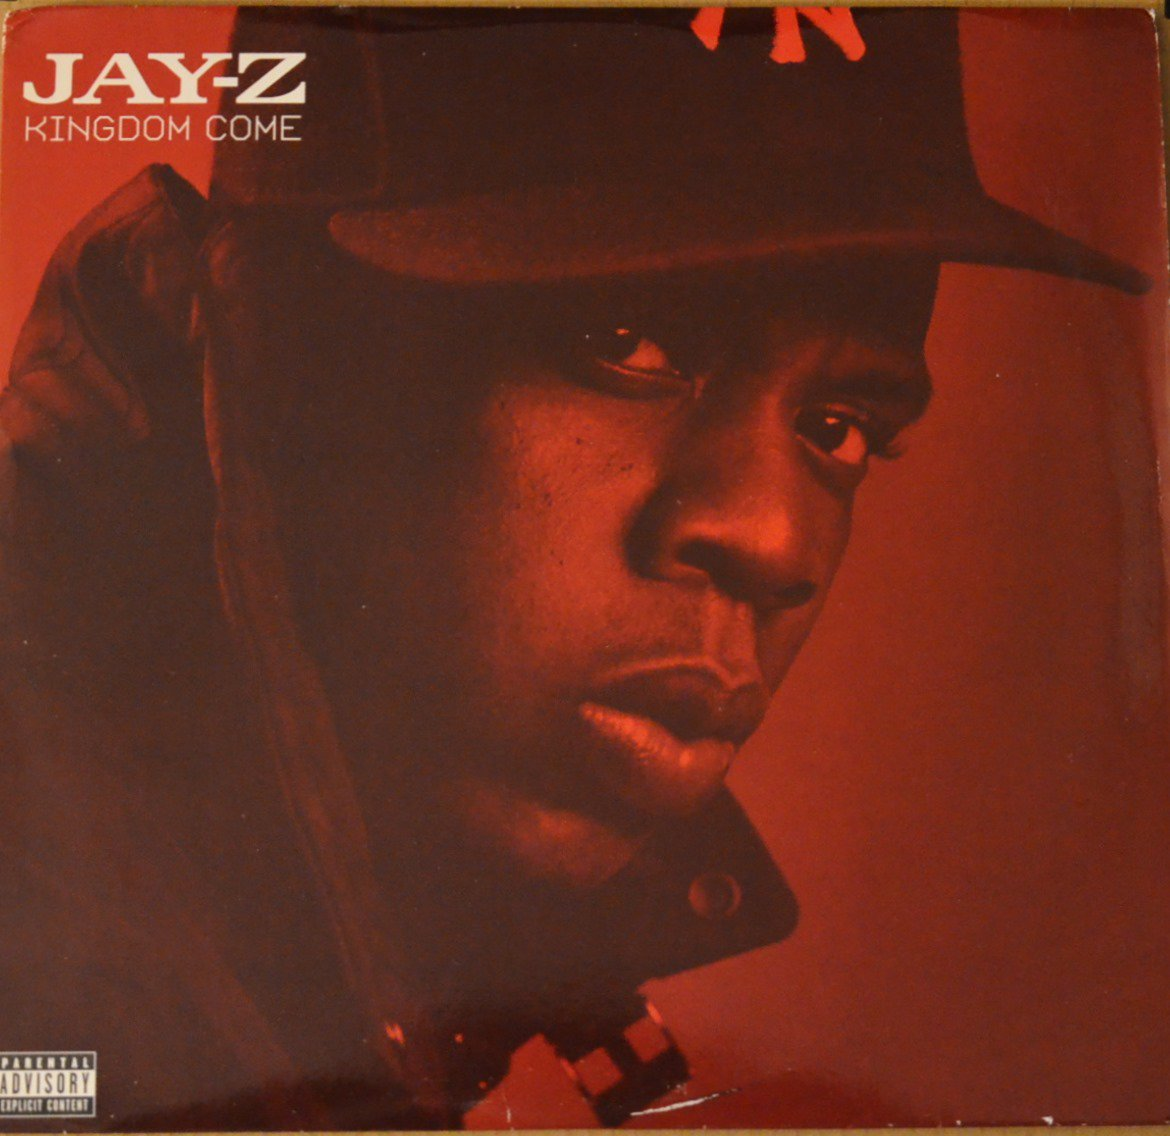 JAY-Z ‎/ KINGDOM COME (2LP)